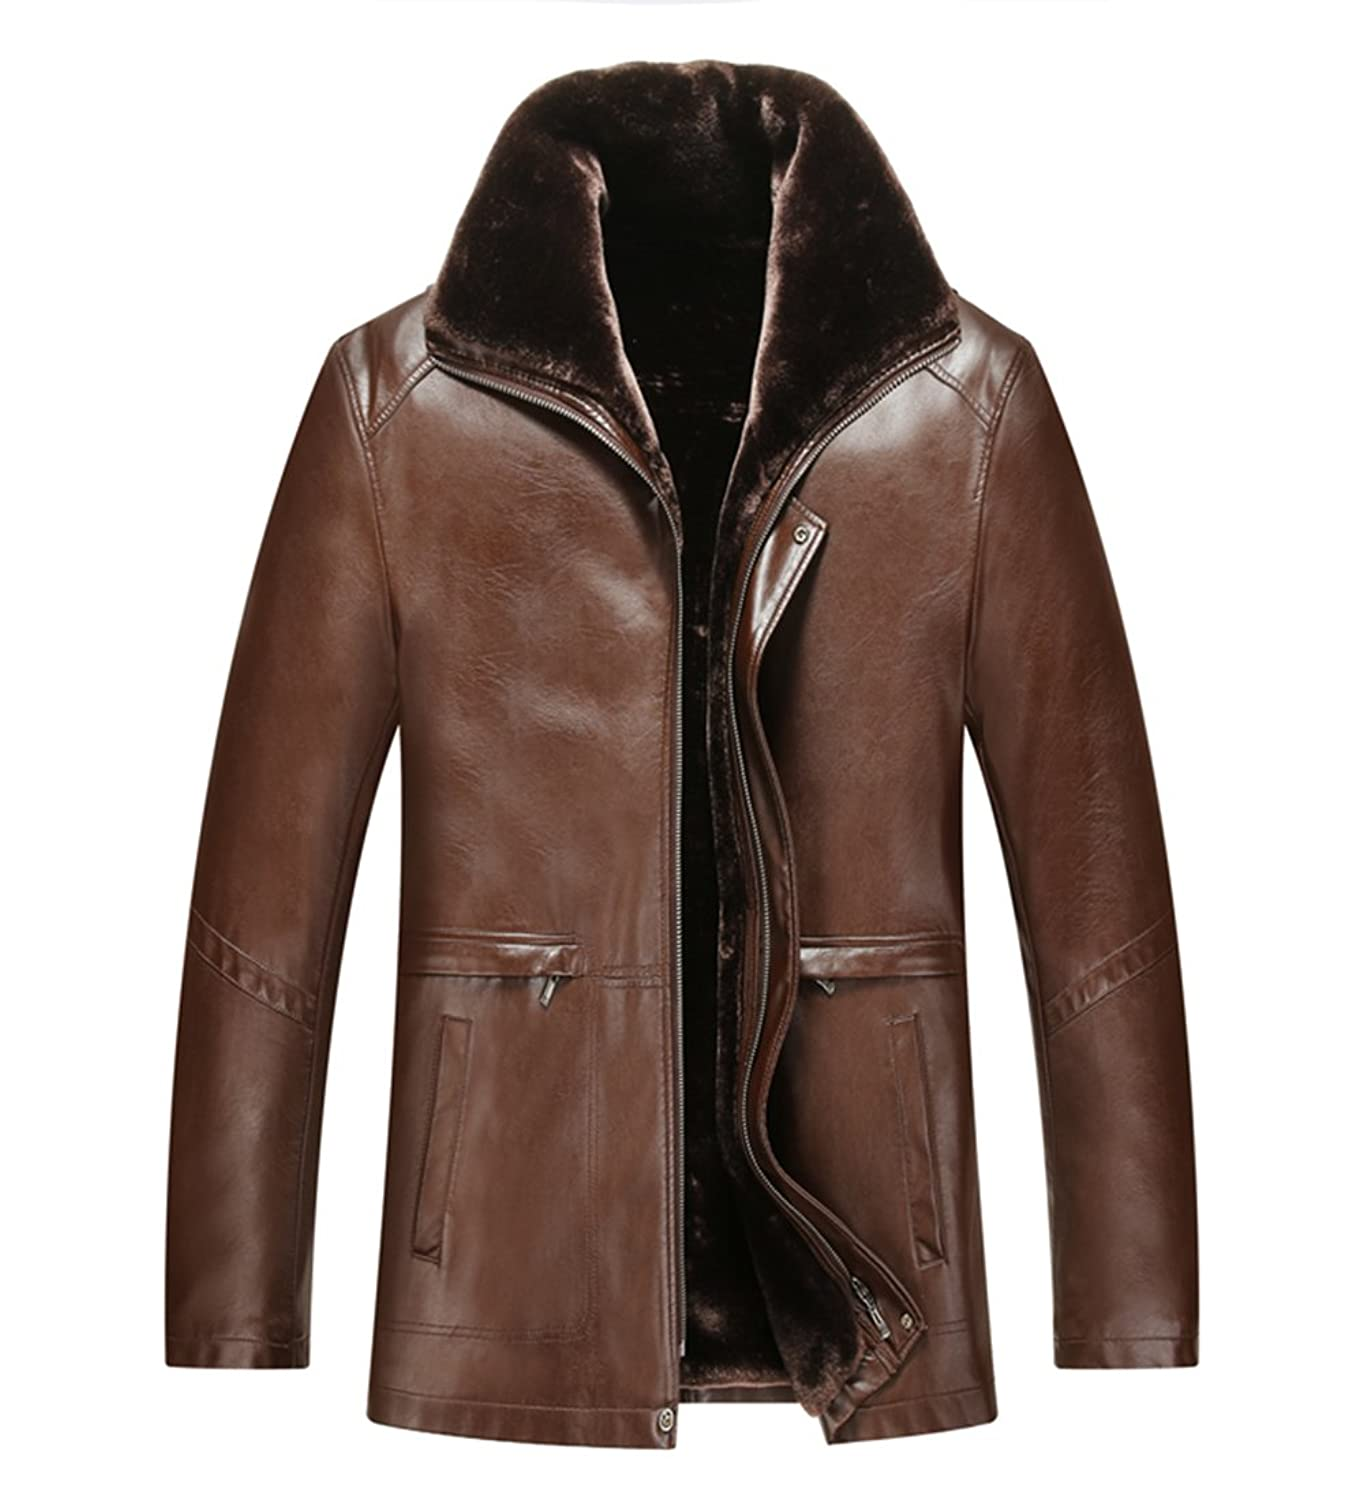 Tongzemeng Men's Winter Leather Solid Color Casual PU Leather Turn-down Collar Jackets